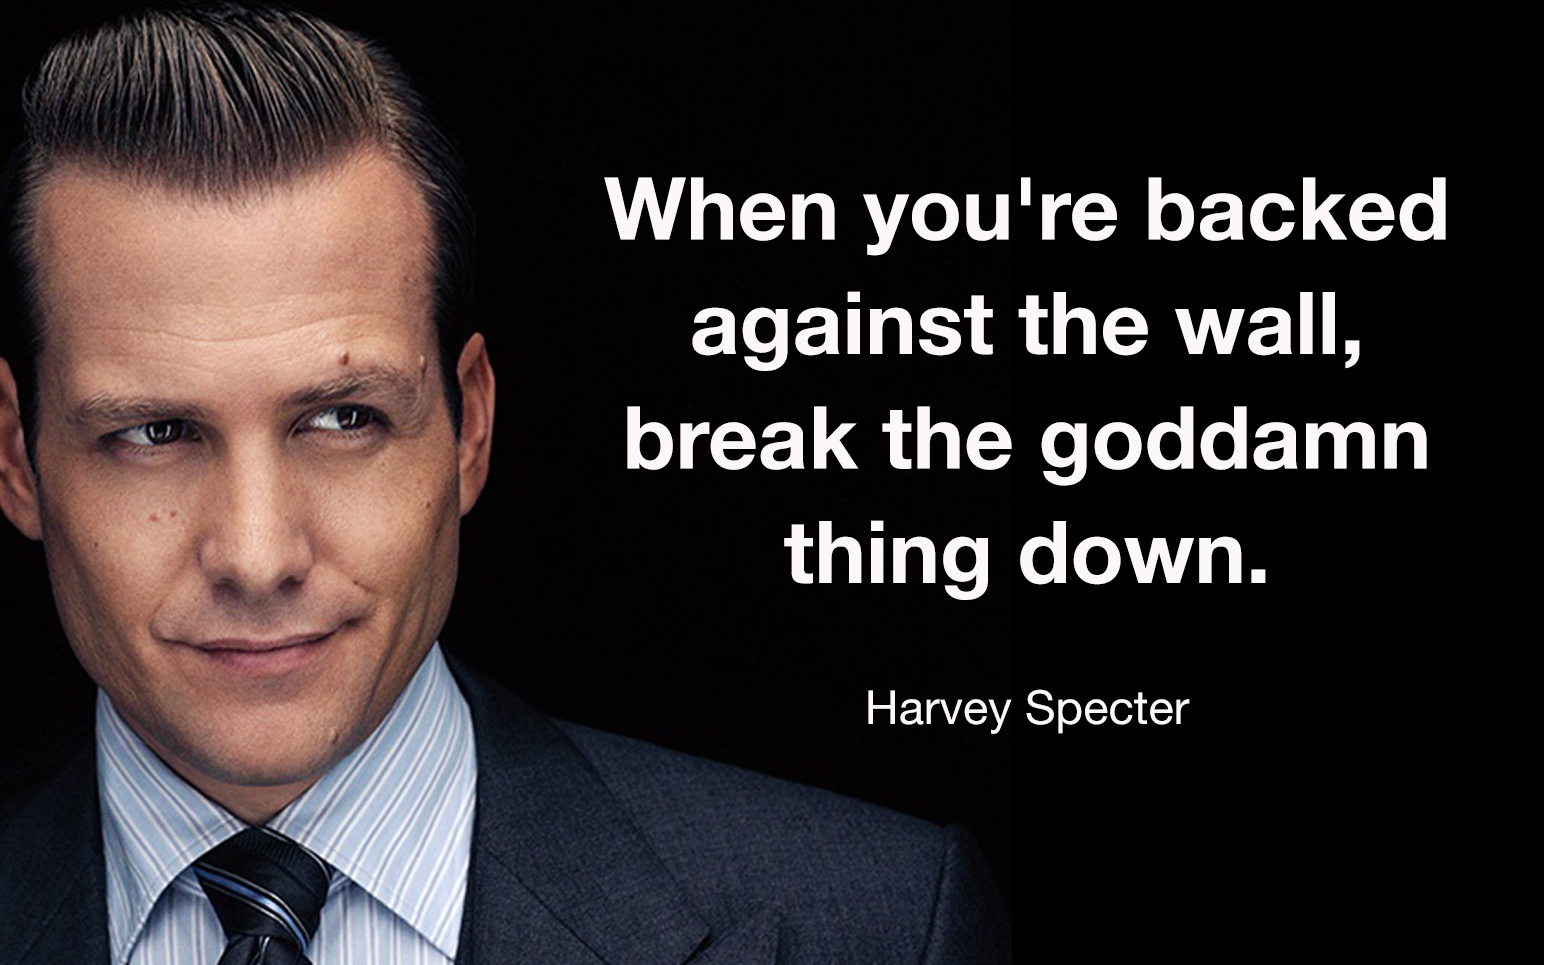 Suits Hd Wallpaper Quotes 21 Harvey Specter Quotes To Help You Win At Life And